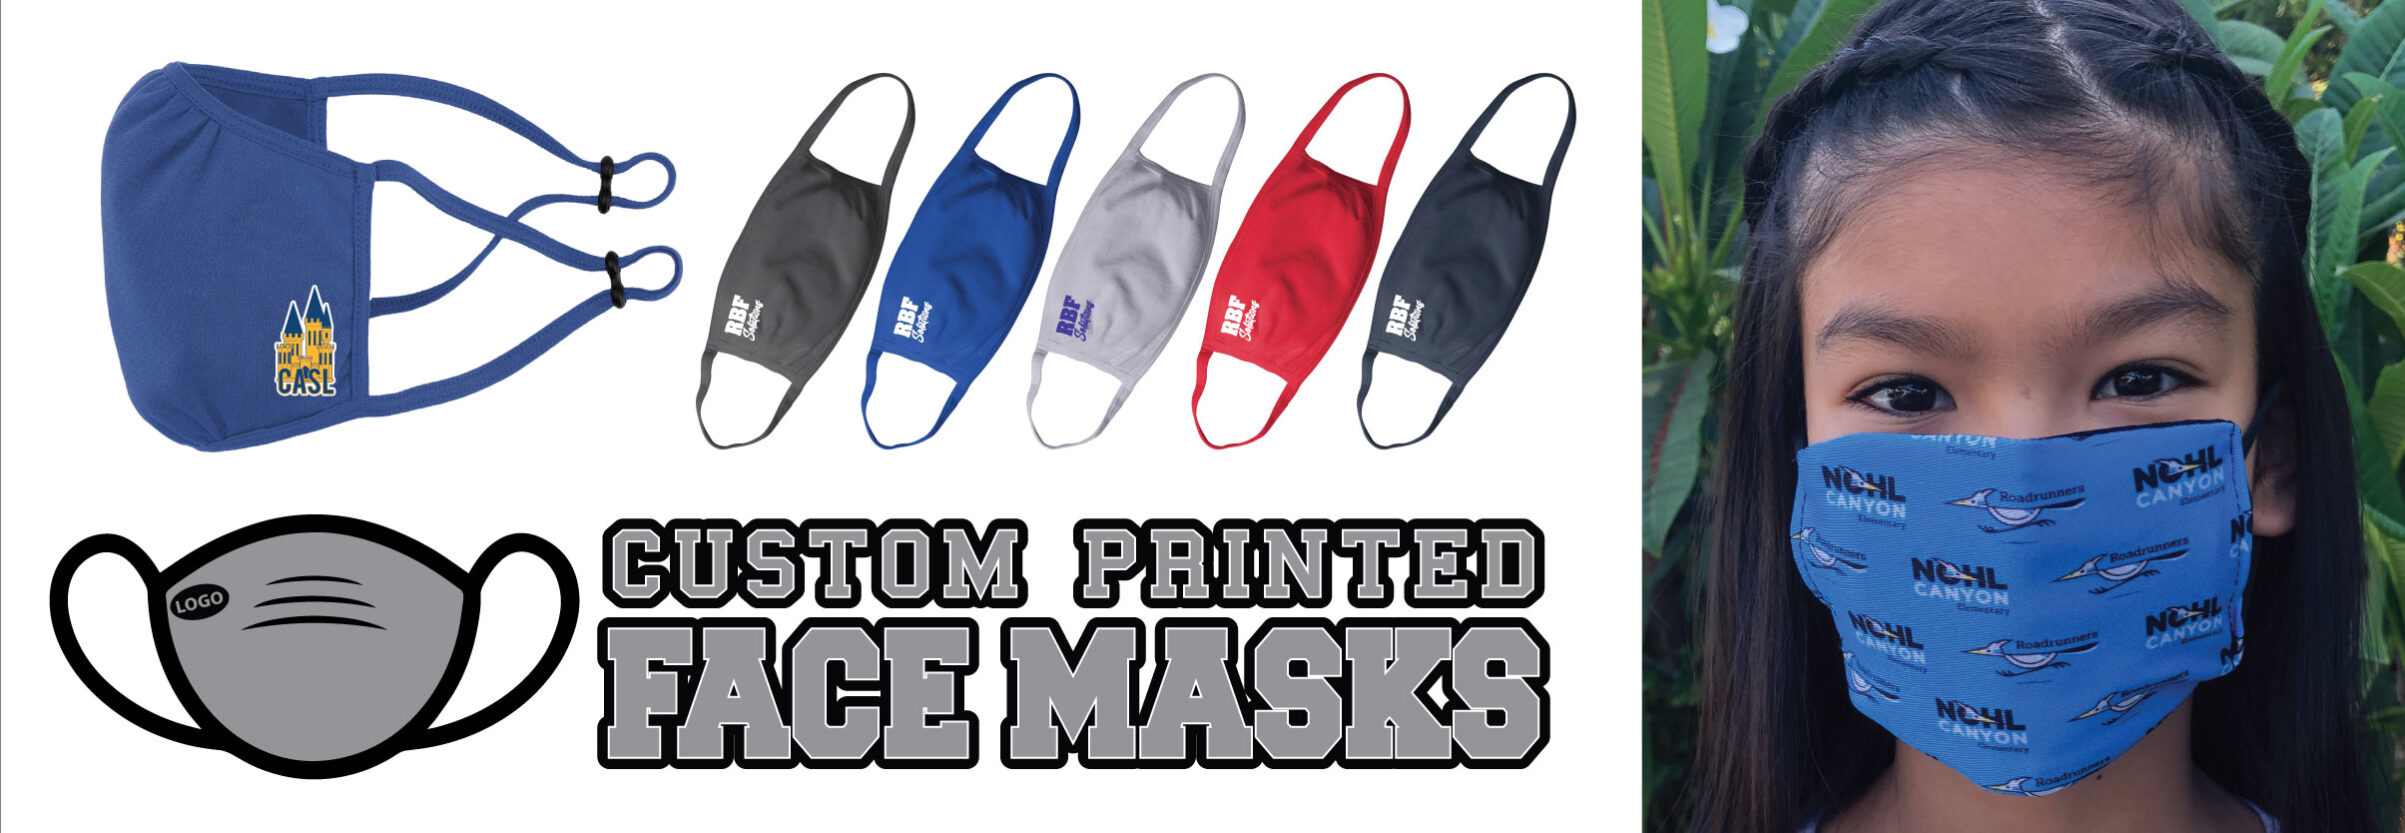 Custom Printed Face Masks